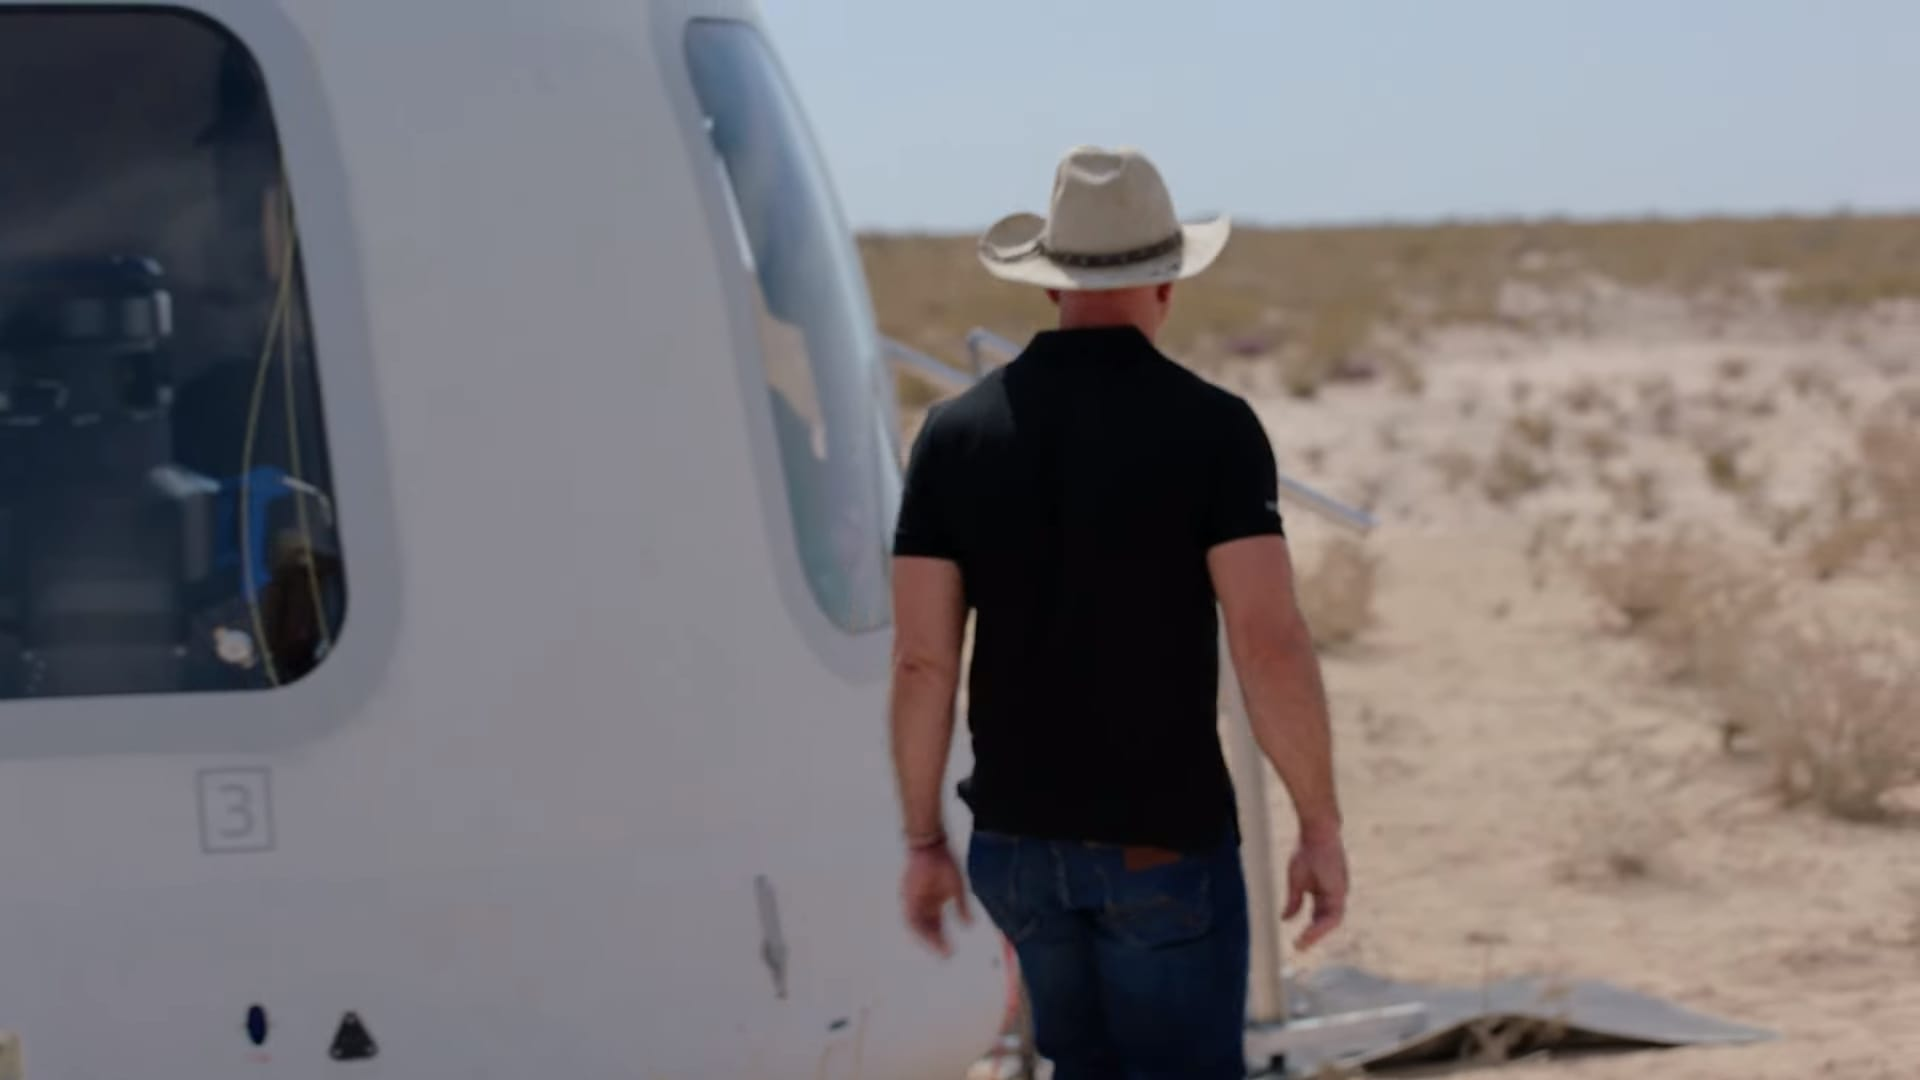 Jeff Bezos walks out to where the New Shepard capsule landed in the Texas desert after a test flight in April 2021.